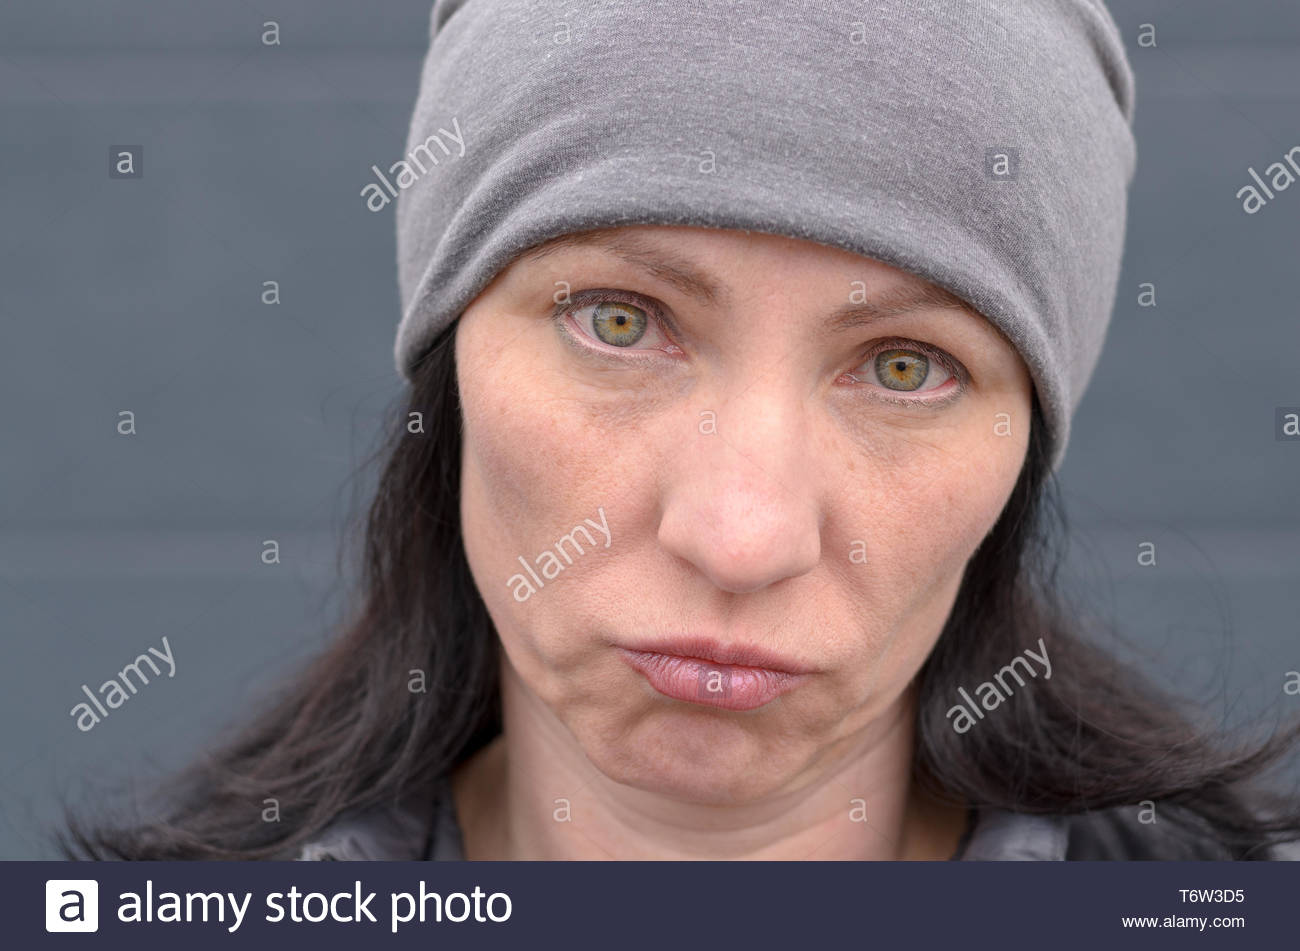 Dubious woman grimacing and looking at camera - Stock Image